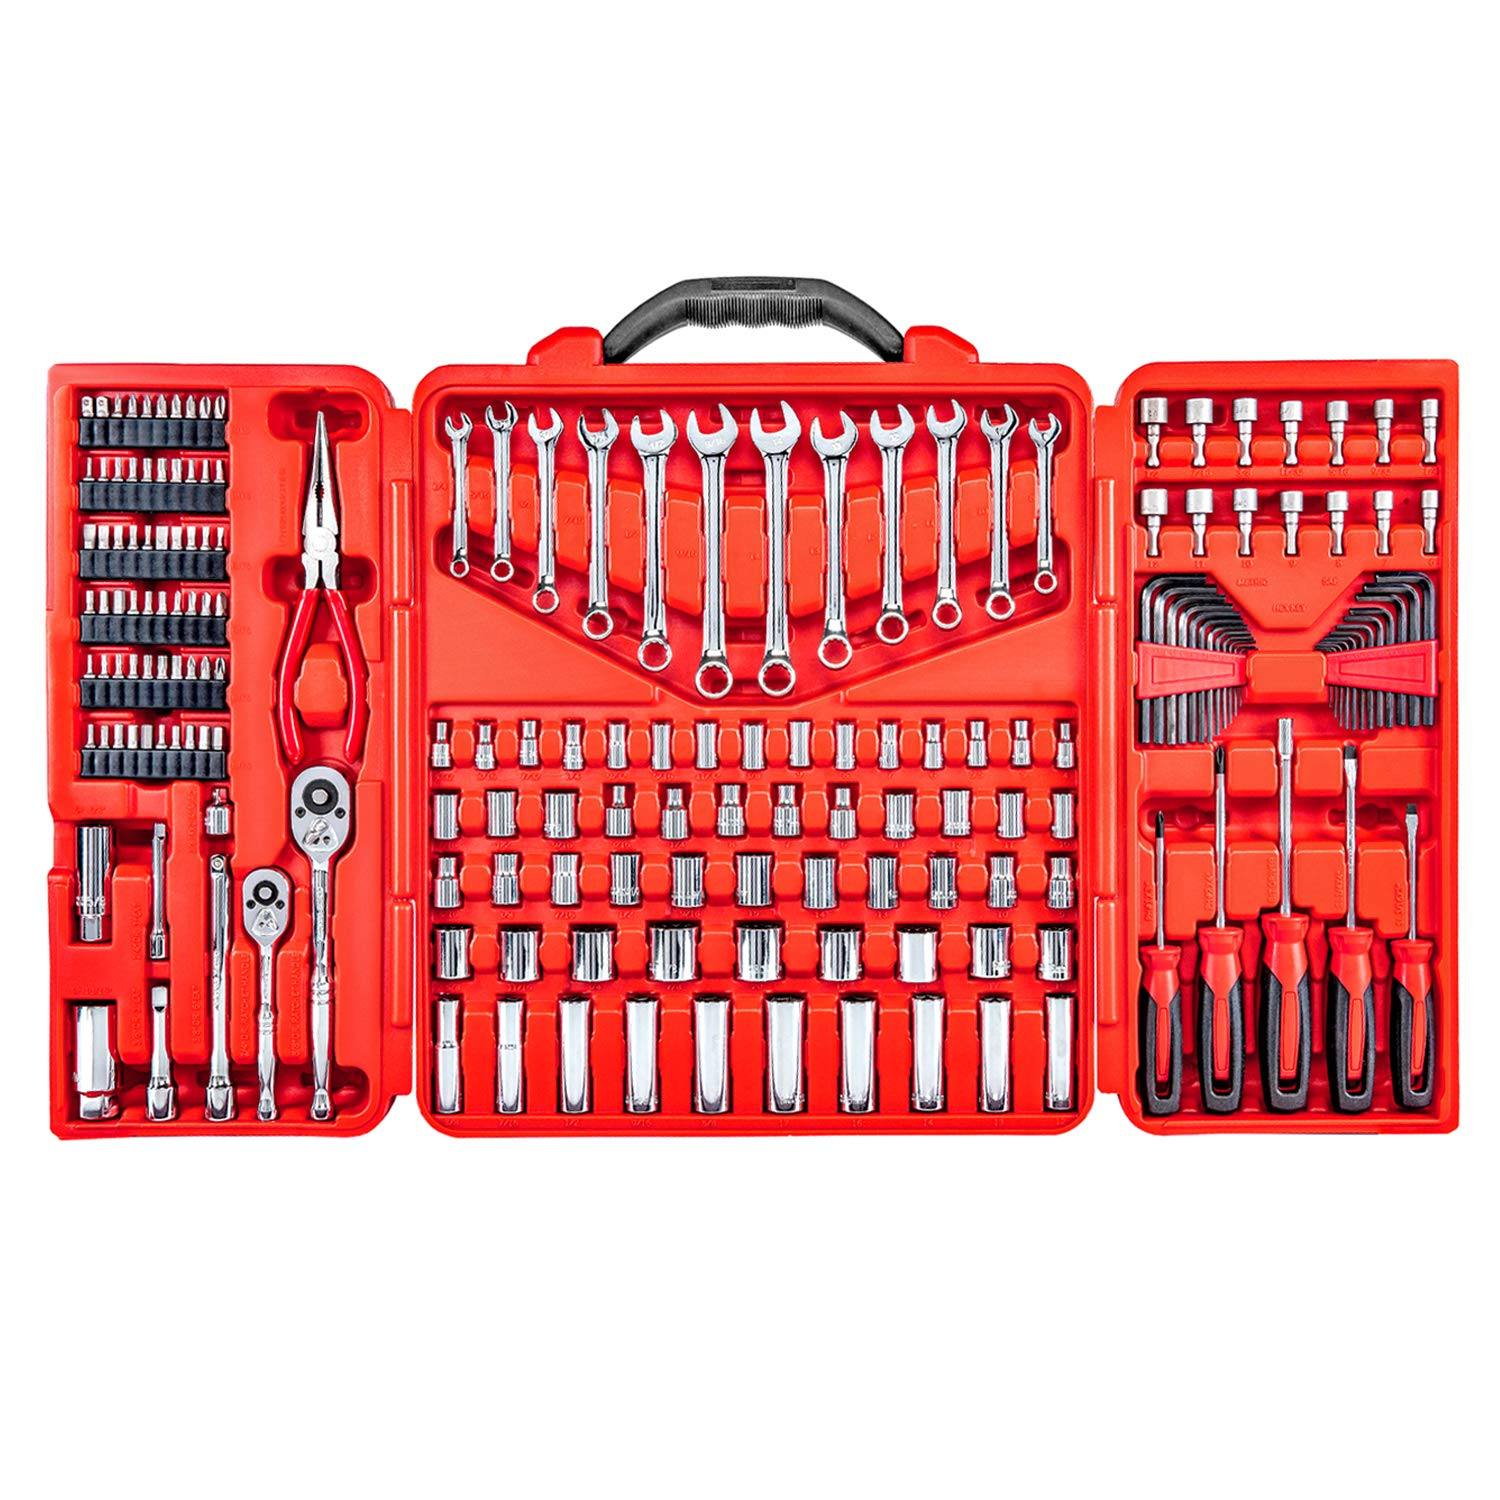 Mechanics Tool Set - 190 Piece Professional Hand Tool Box Kit - 1/4 - 3/8 Inch Drive Socket Set, Inch/Metric, 6 - 12 Point, Screwdrivers, Hex key, Wrenches, Pliers, Ratchets, Bits, Industrial & Home by Right Hand